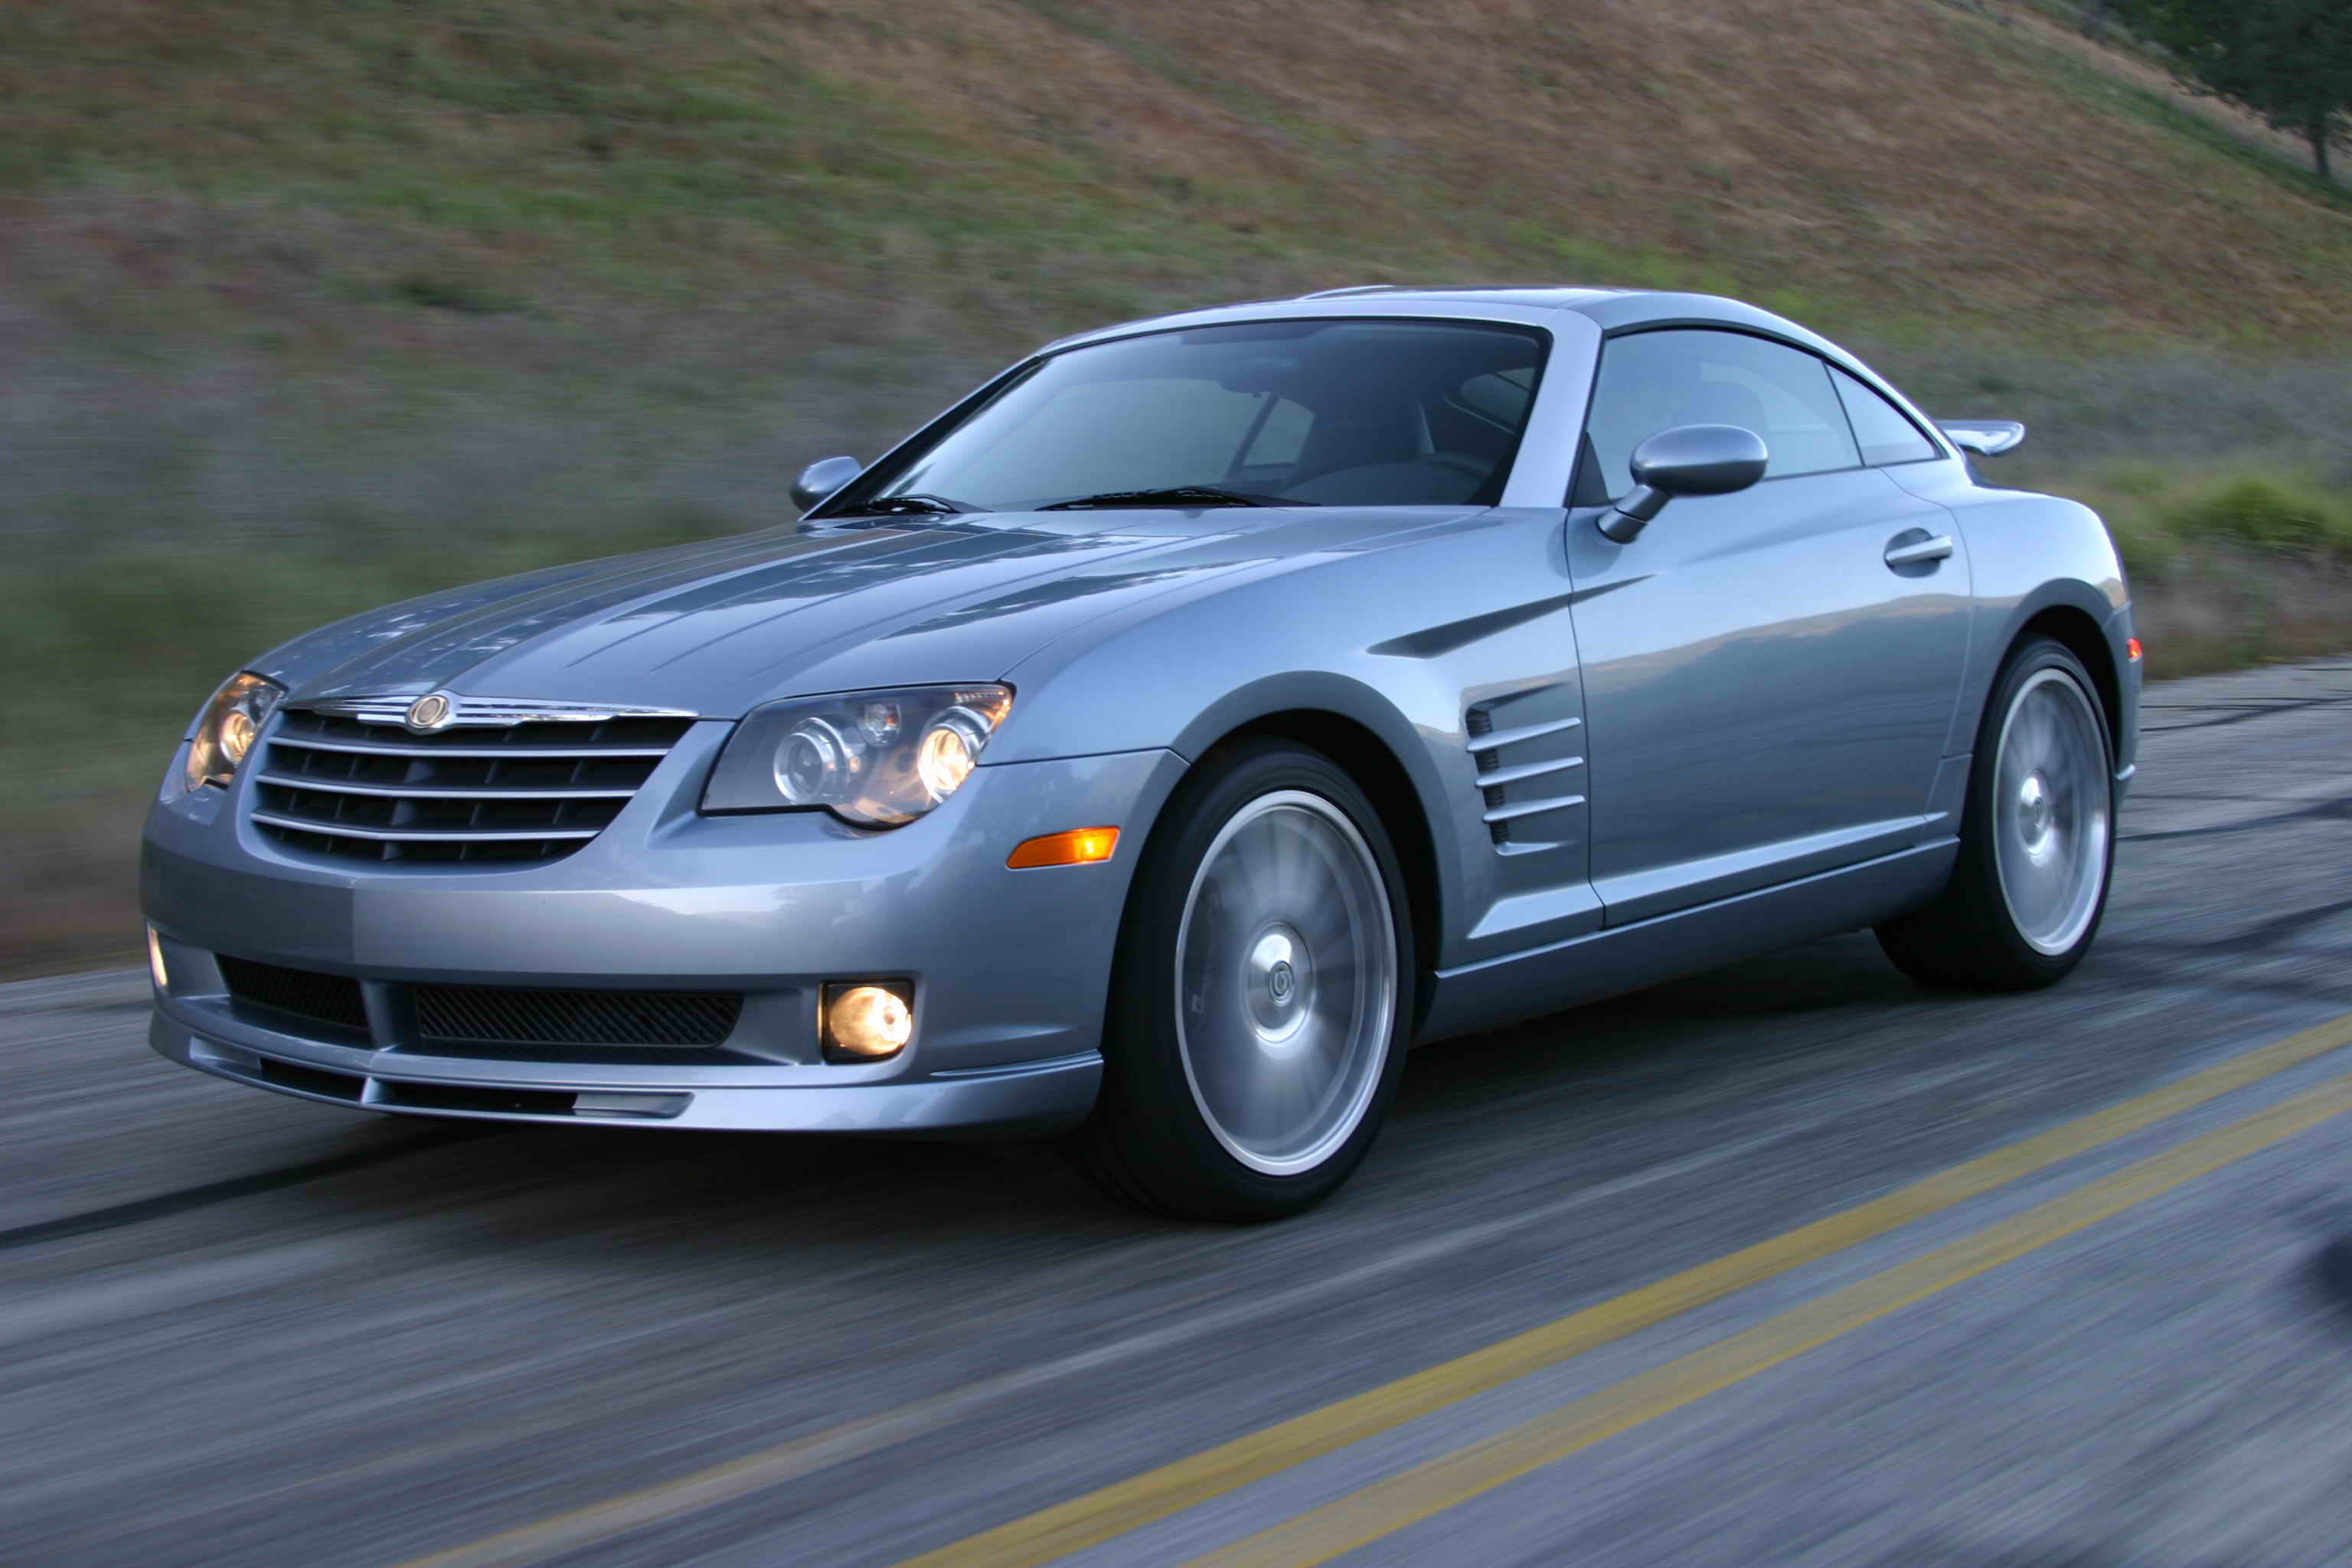 2005 Chrysler Crossfire SRT-6 Pictures, Photos, Wallpapers. | Top Speed